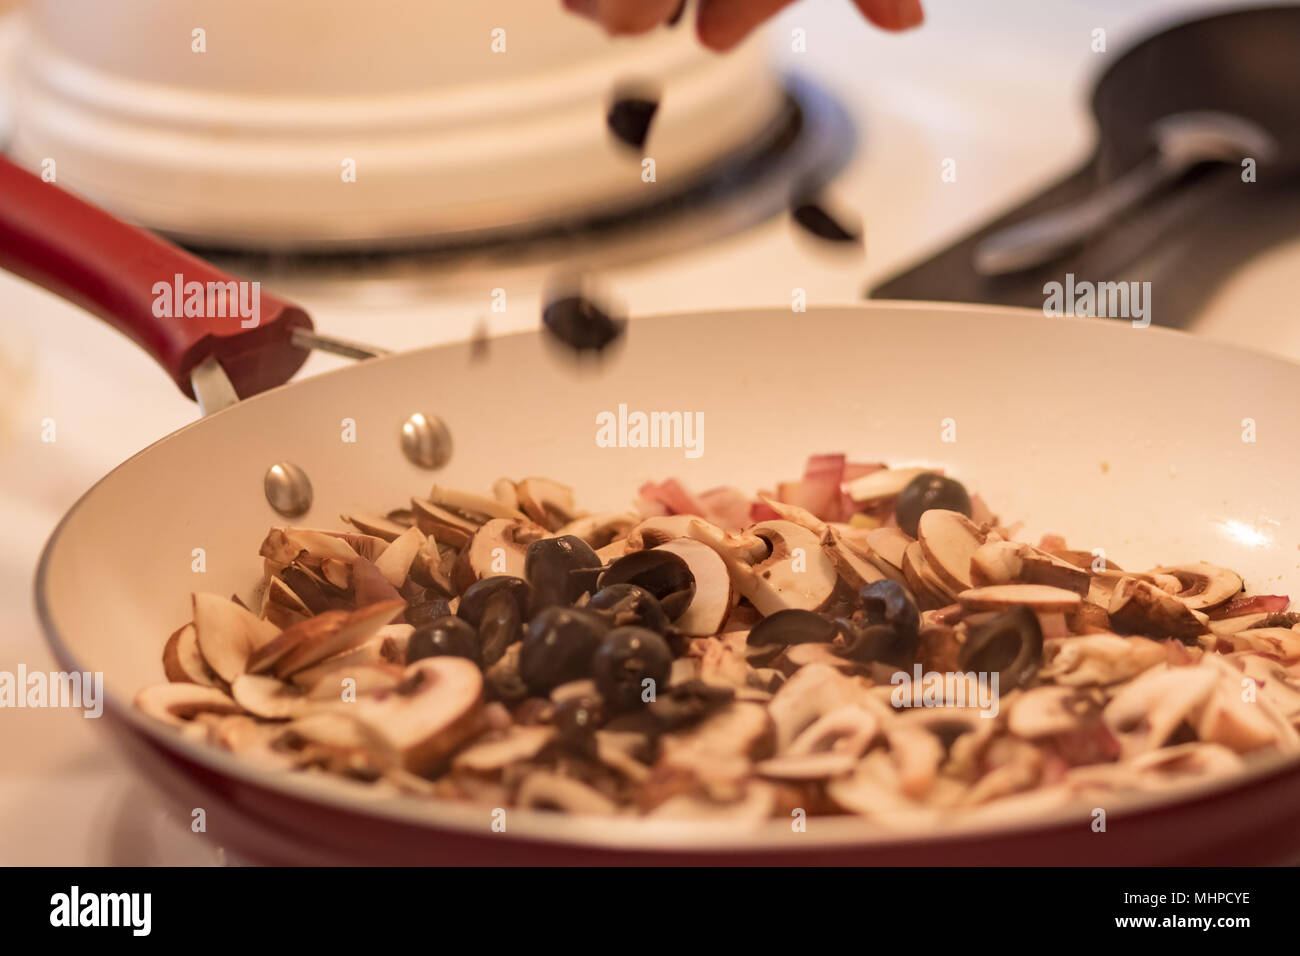 Hand dropping black olives in to frying pan. Chopped black olives, sliced mushrooms and red onion in red and white frying pan. - Stock Image